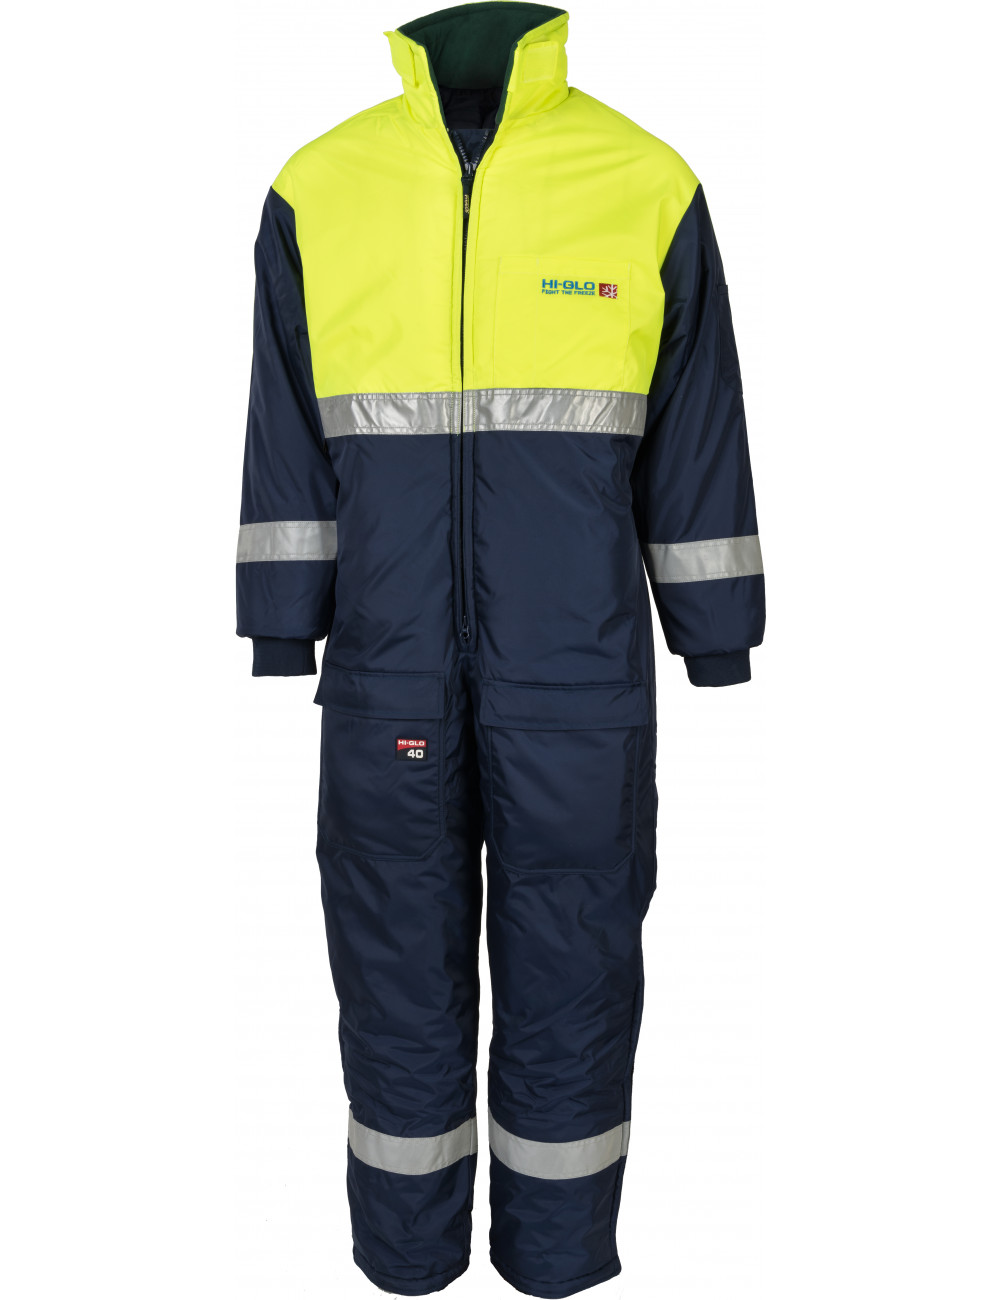 Freezer and refrigerator coveralls with reflectors protecting up to -83,3 ° C